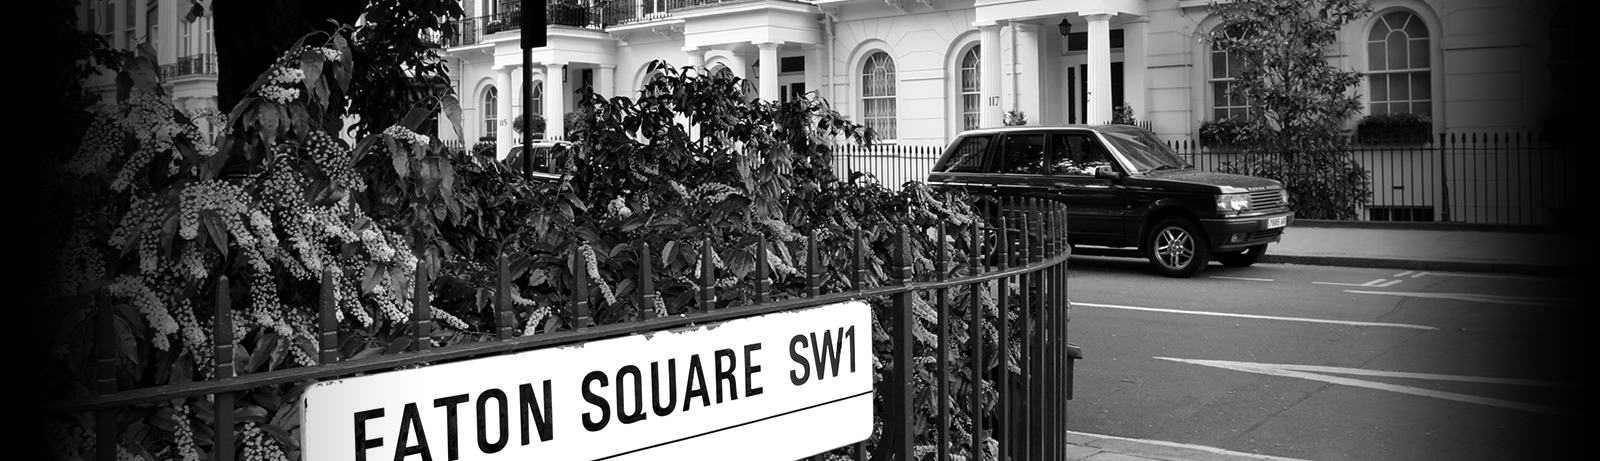 Location London Property Ltd | Eaton Square